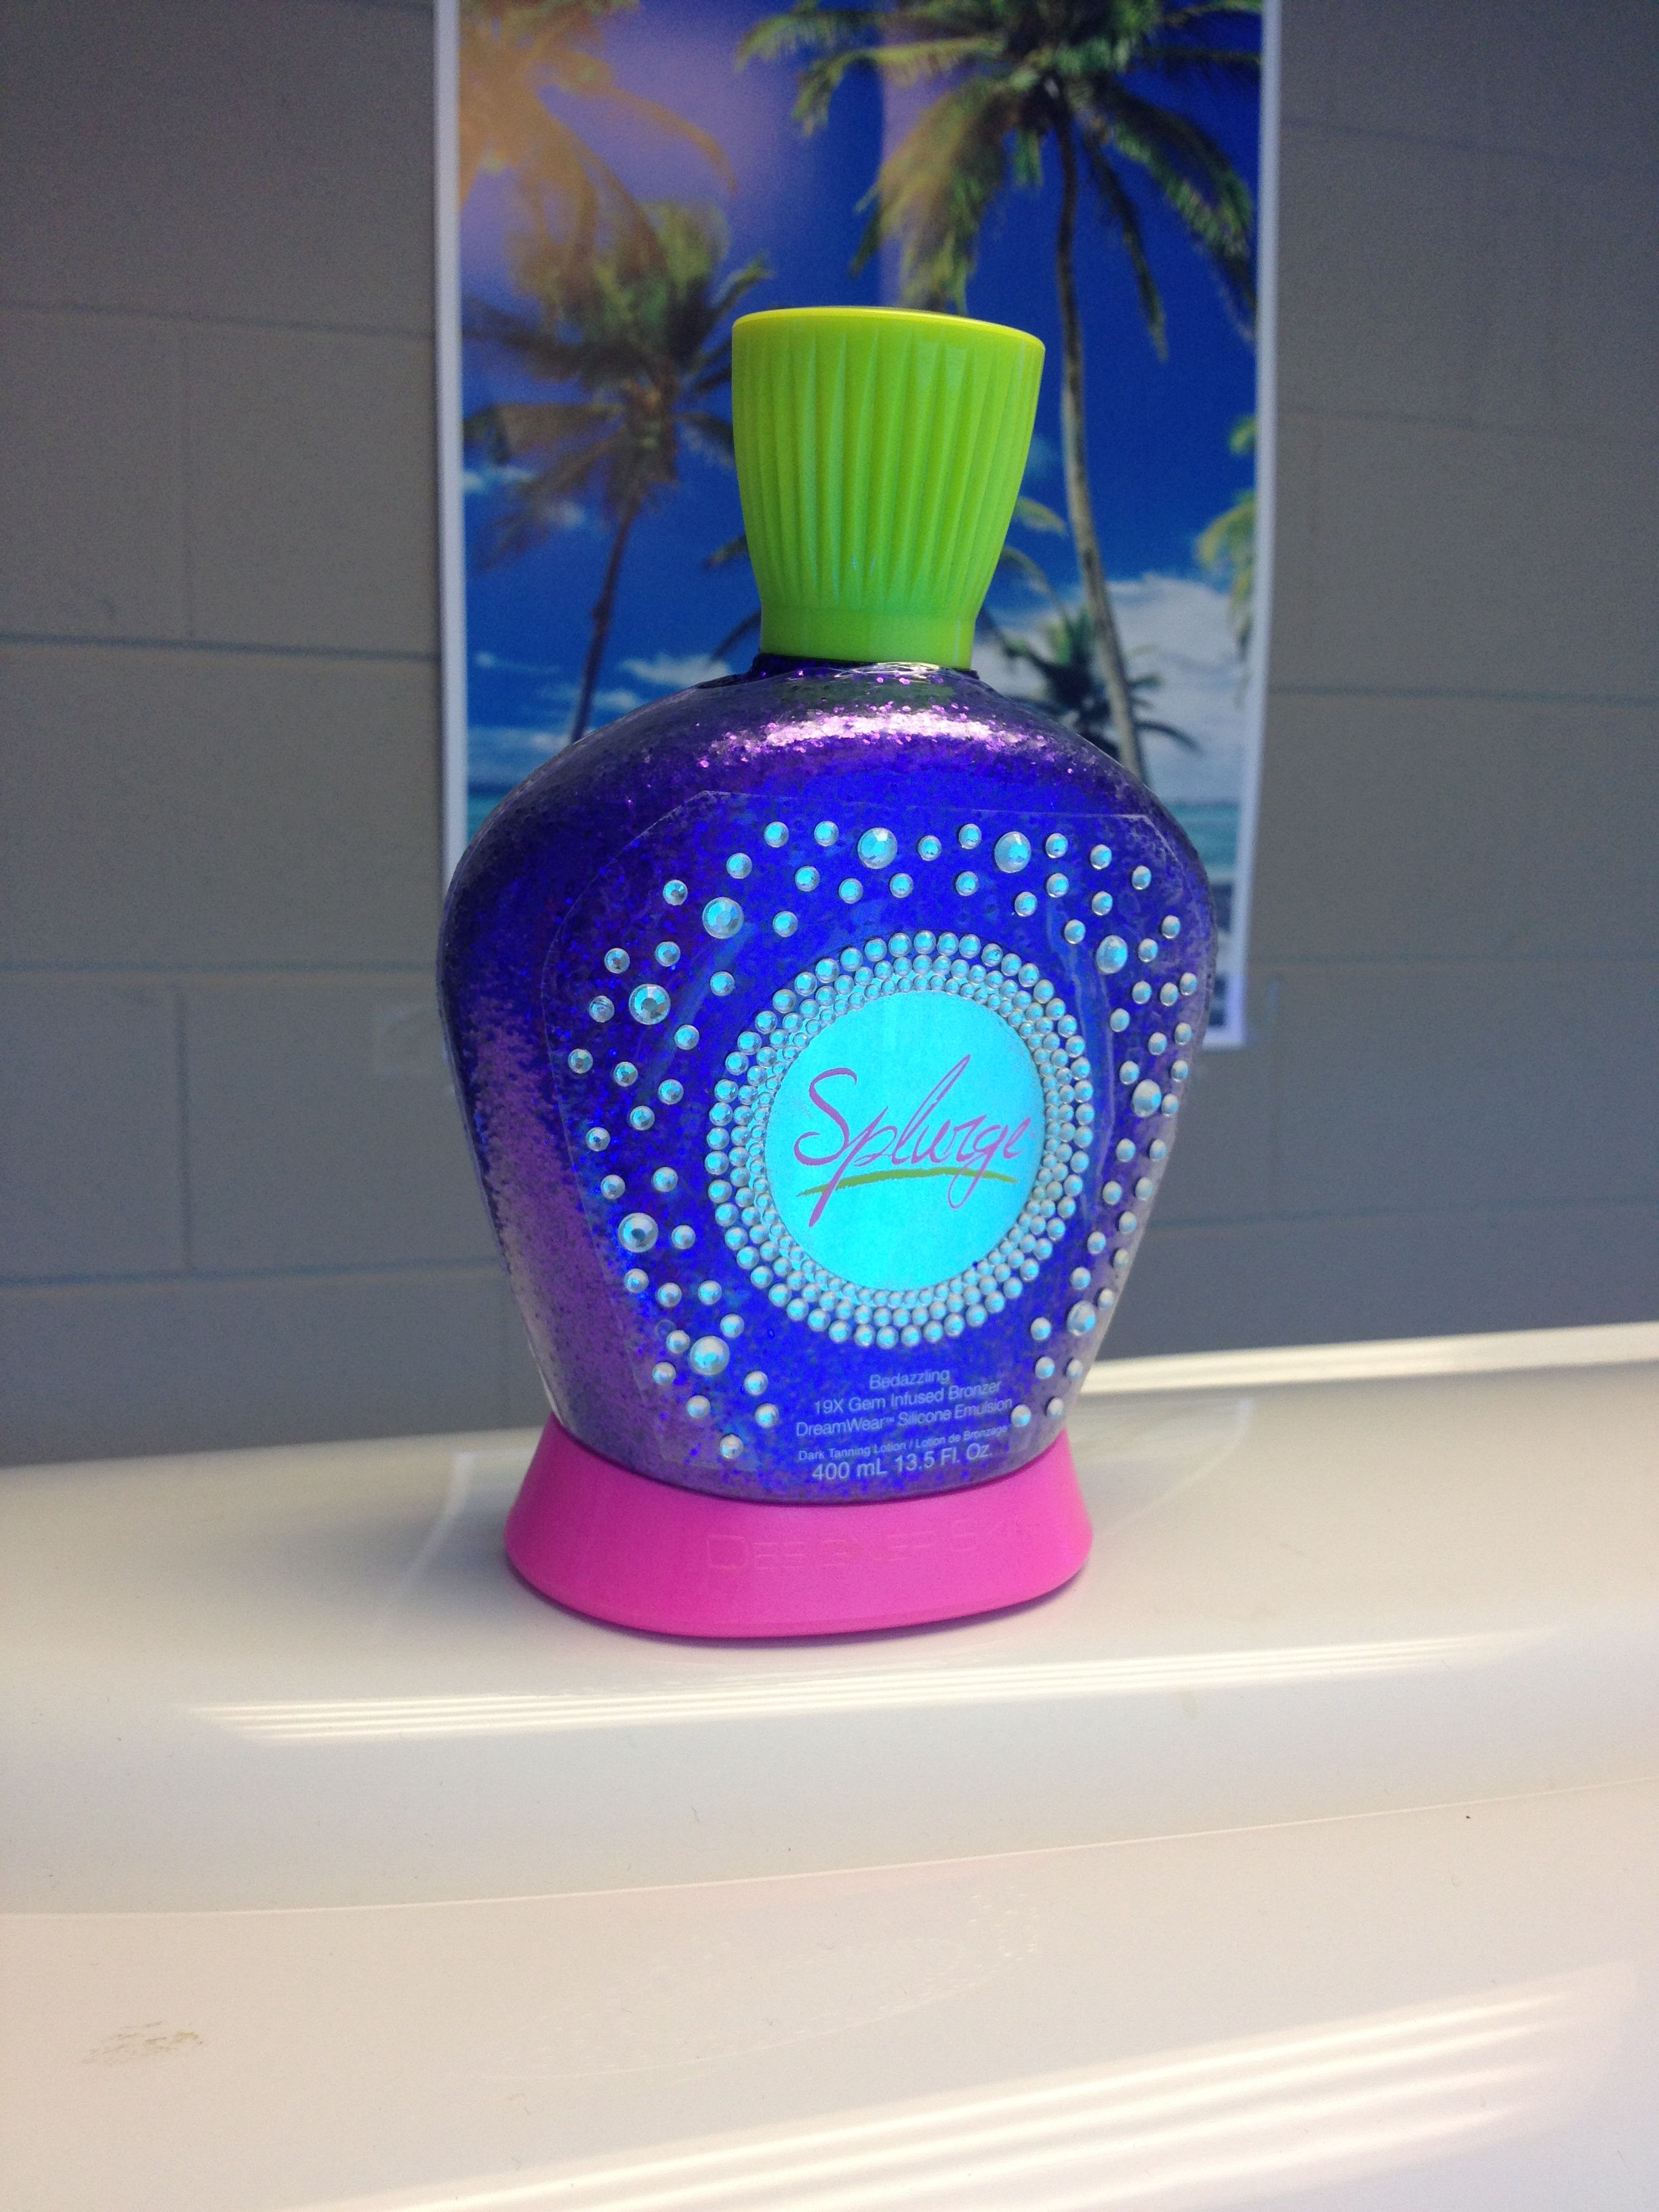 Best Tanning Bed Lotion 2019 Splurge! Best tanning bed lotion & it smells so good! :) | Tanning